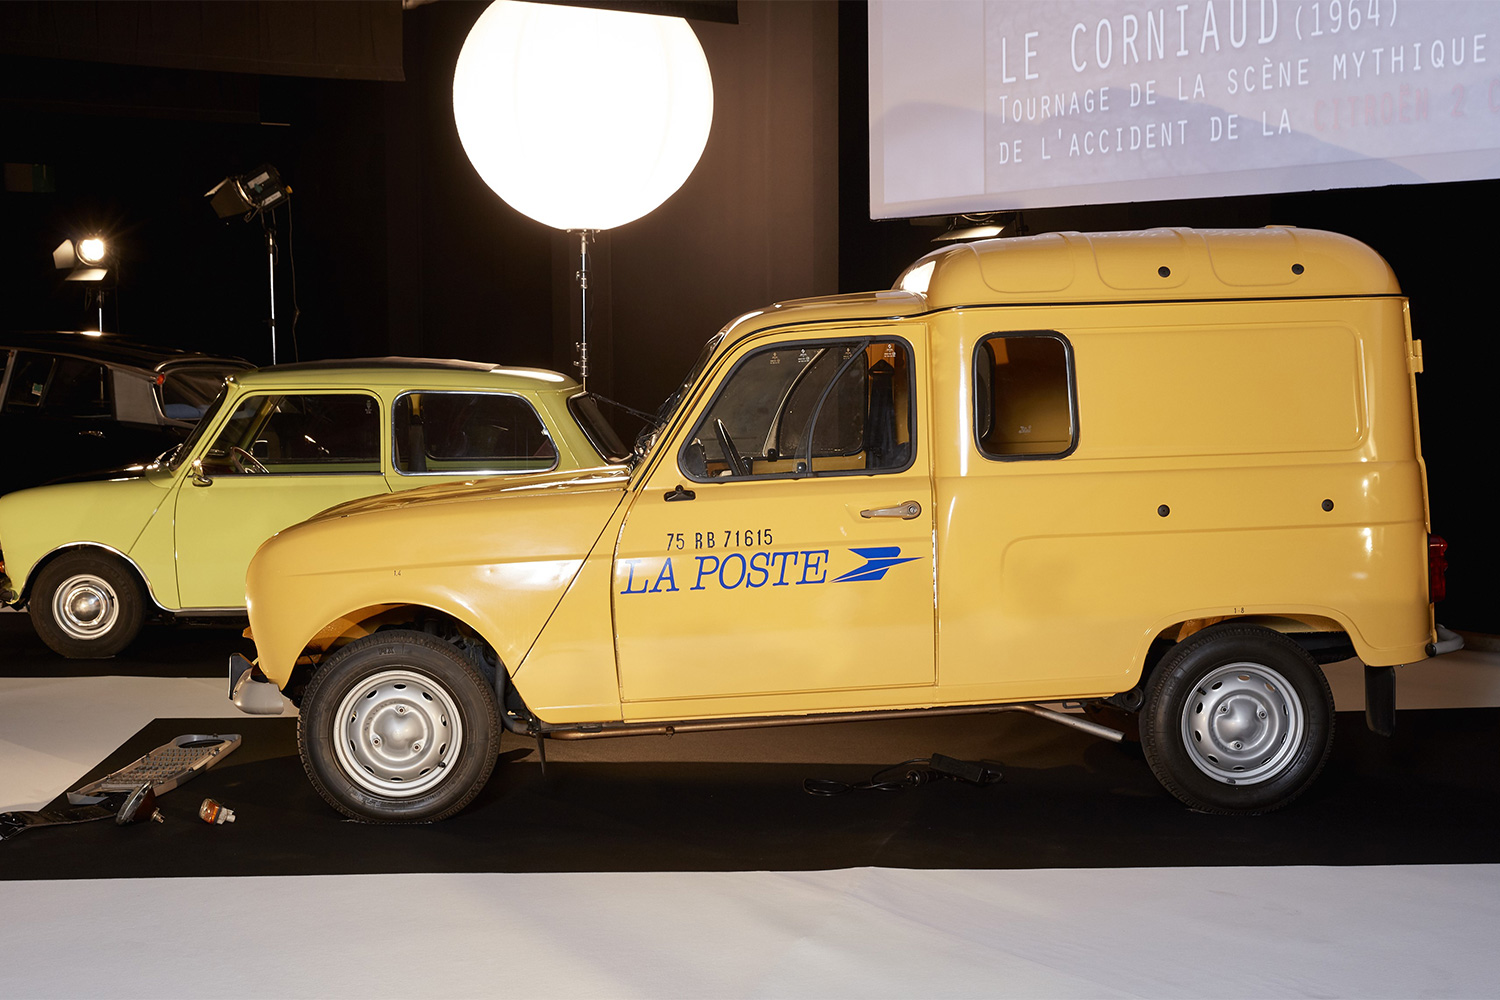 Renault 4 fourgonnette La Poste (The Visitors / Les Visiteurs, 1993, Jean-Marie Poiré)